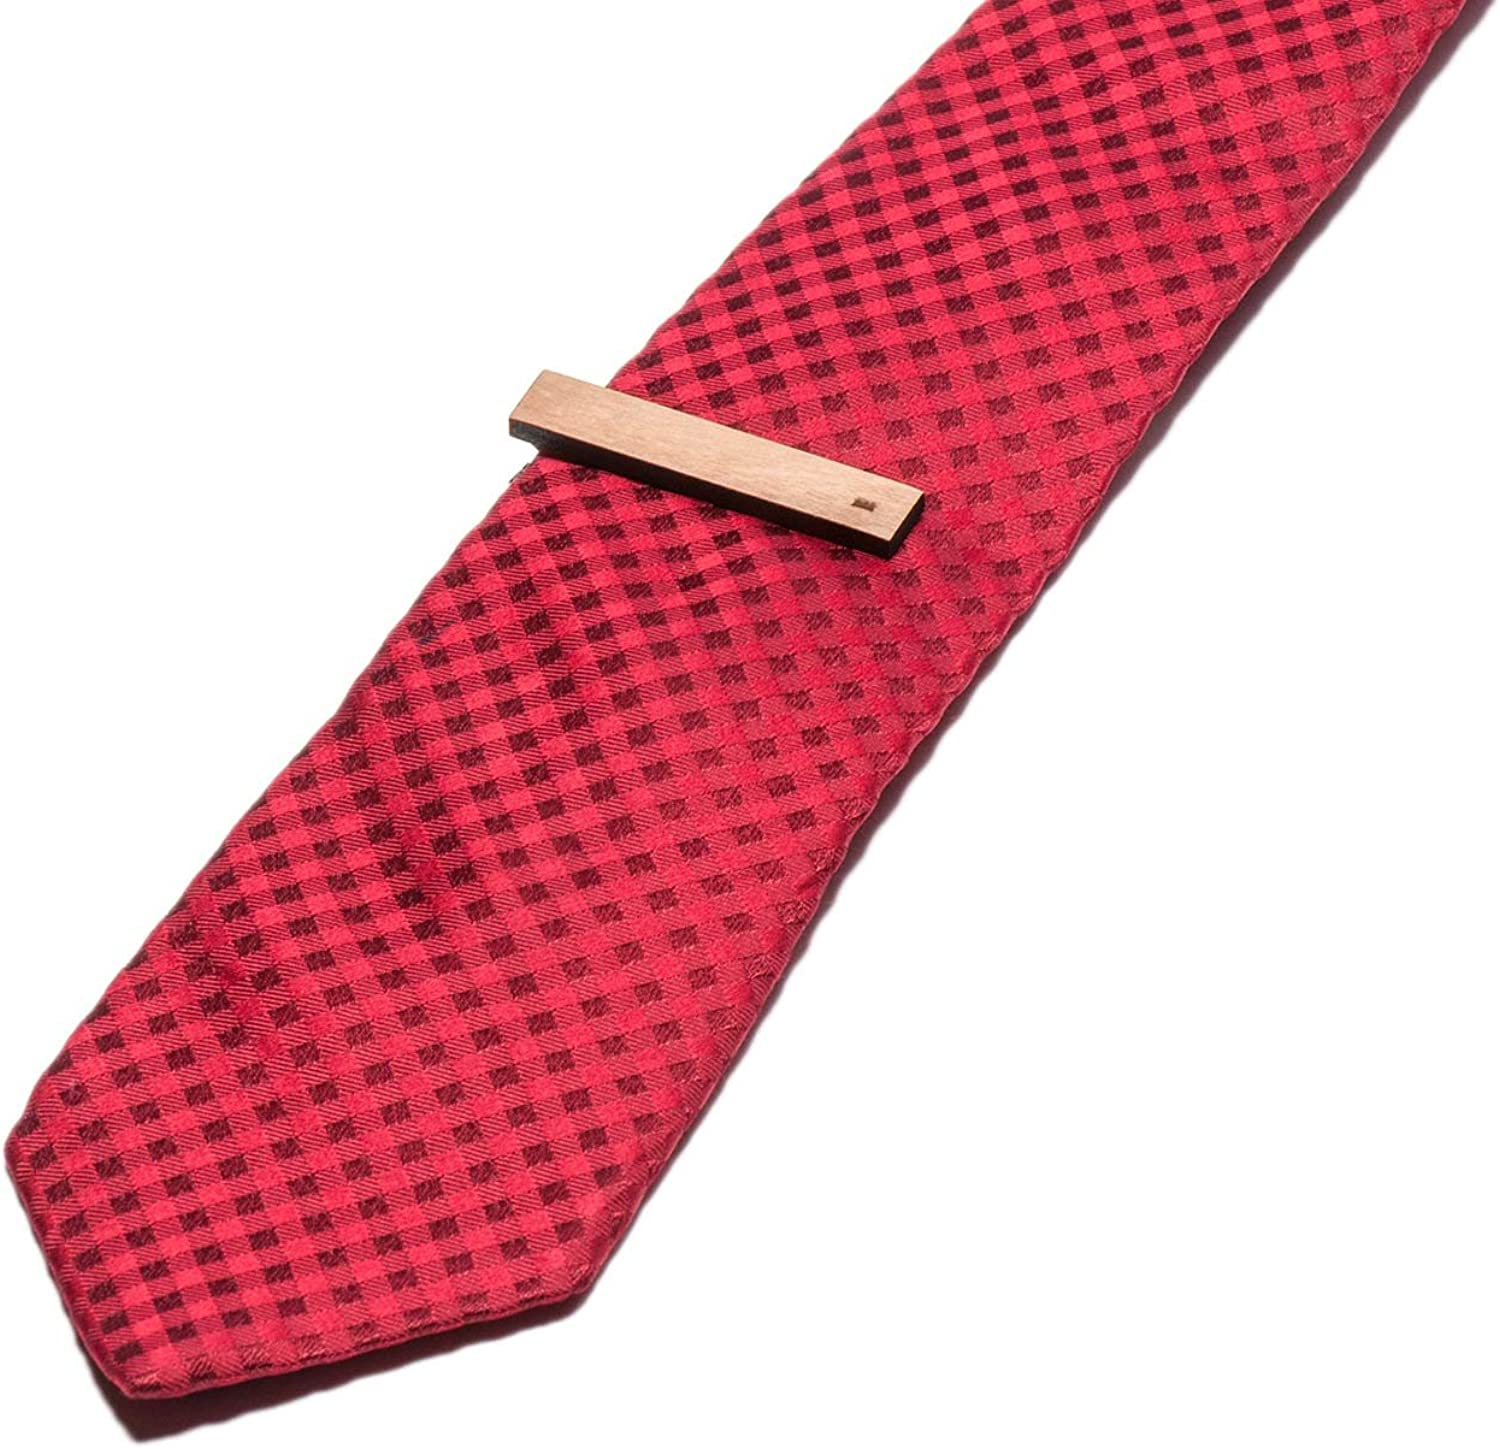 Wooden Accessories Company Wooden Tie Clips with Laser Engraved Marsh Weed Design Cherry Wood Tie Bar Engraved in The USA